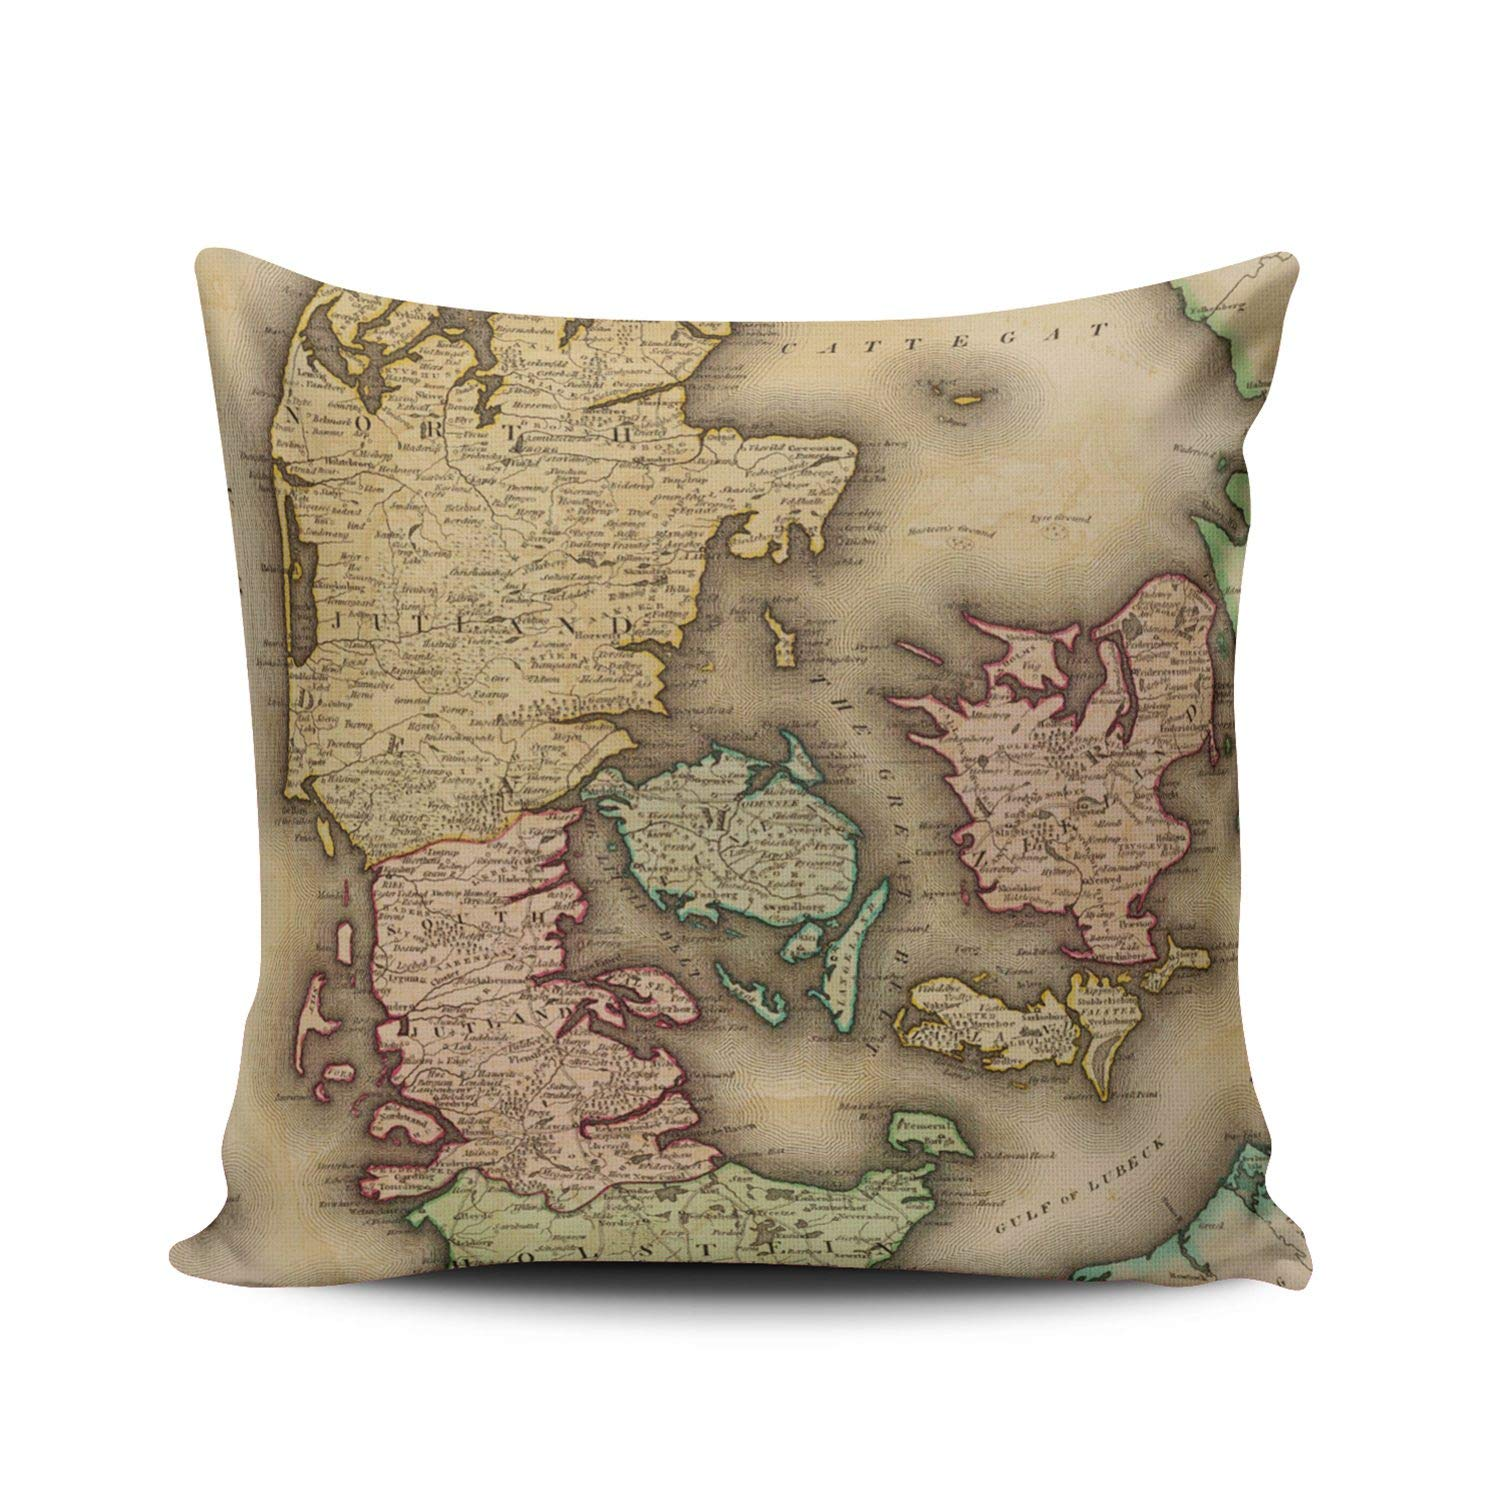 Marble World Map in Light Grey and Brown Pillowcase Home Life Cotton Cushion Case 18 x 18 inches